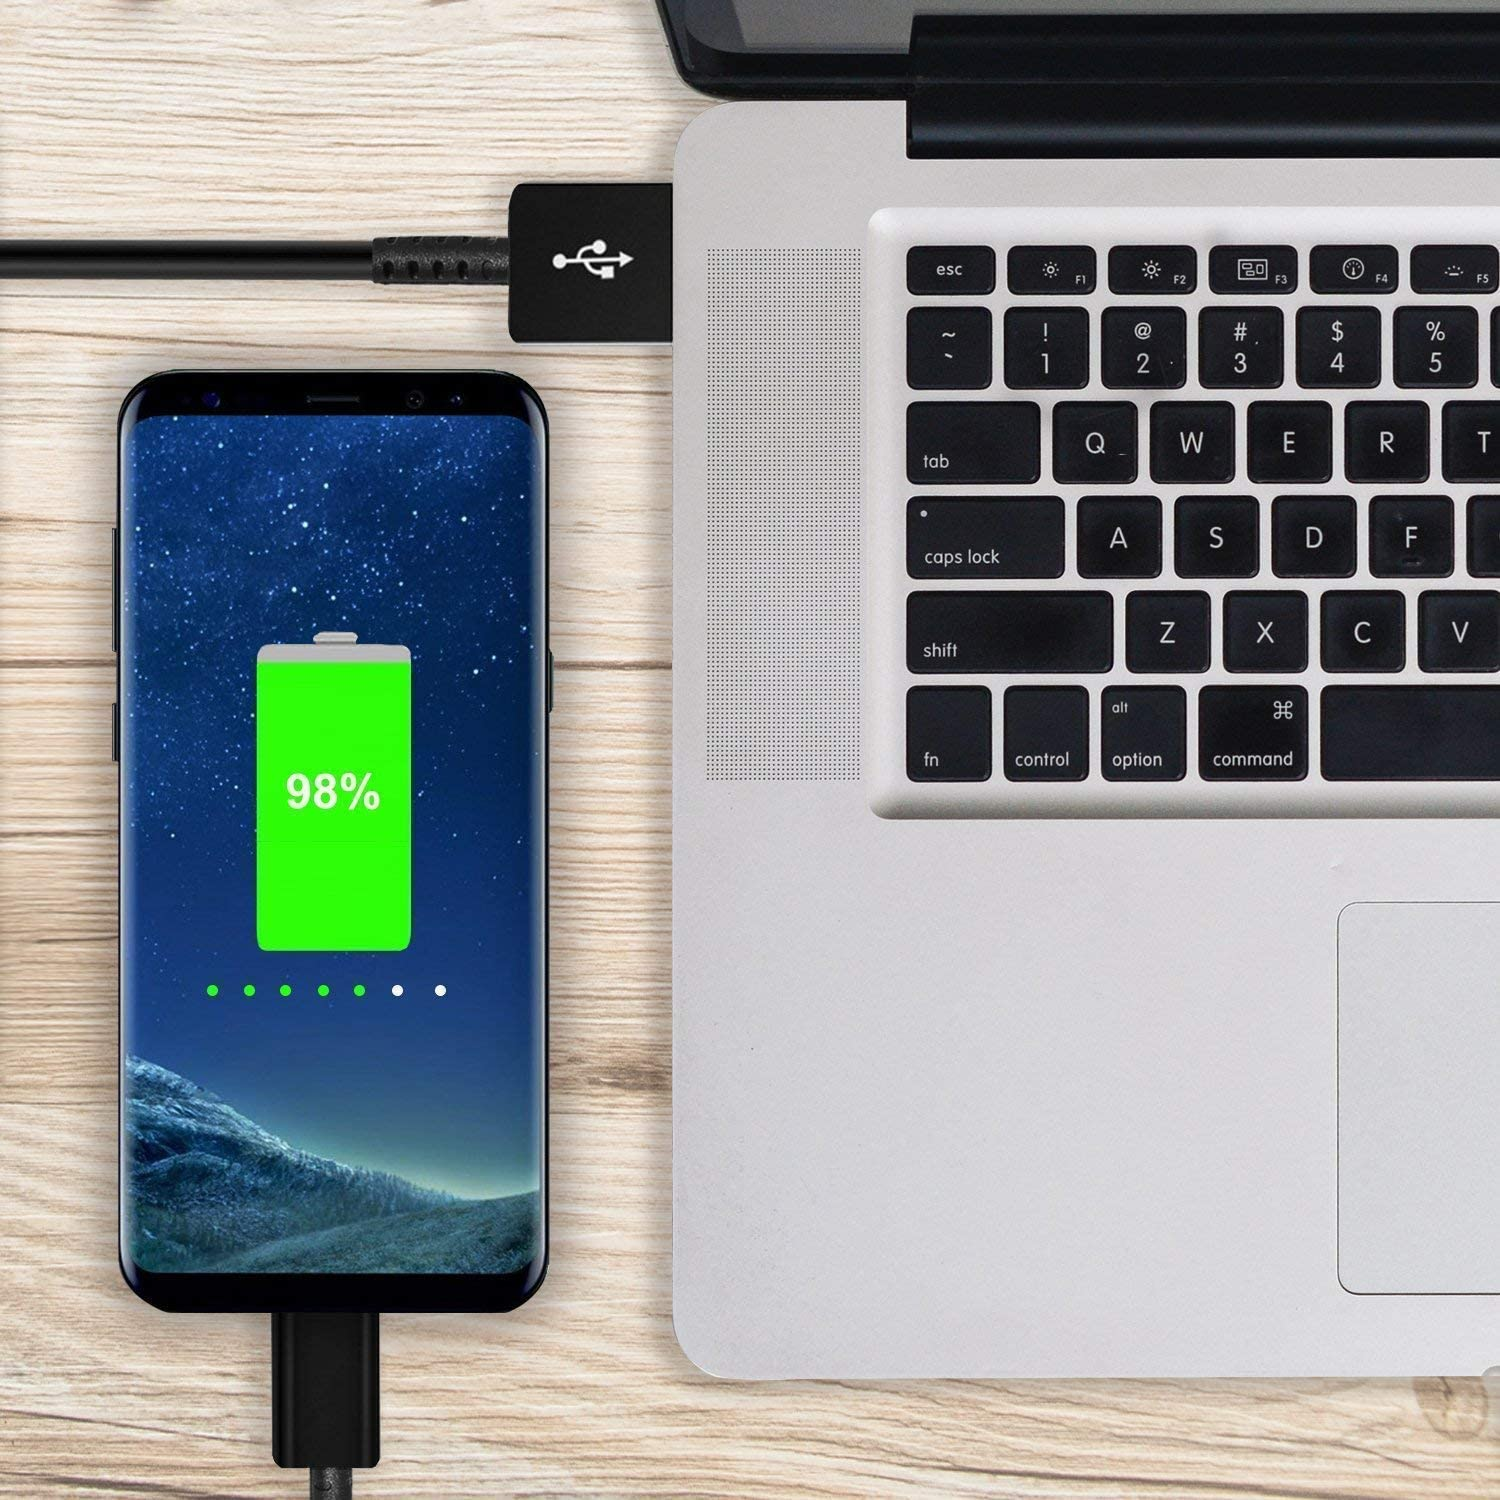 Fast Wall Charger Adapter and USB Type C Cable Samsung Galaxy S9 Adaptive Fast Charging Wall Charger for Samsung Galaxy S9// S8// S10// Edge//Plus//Note 9 Note 8